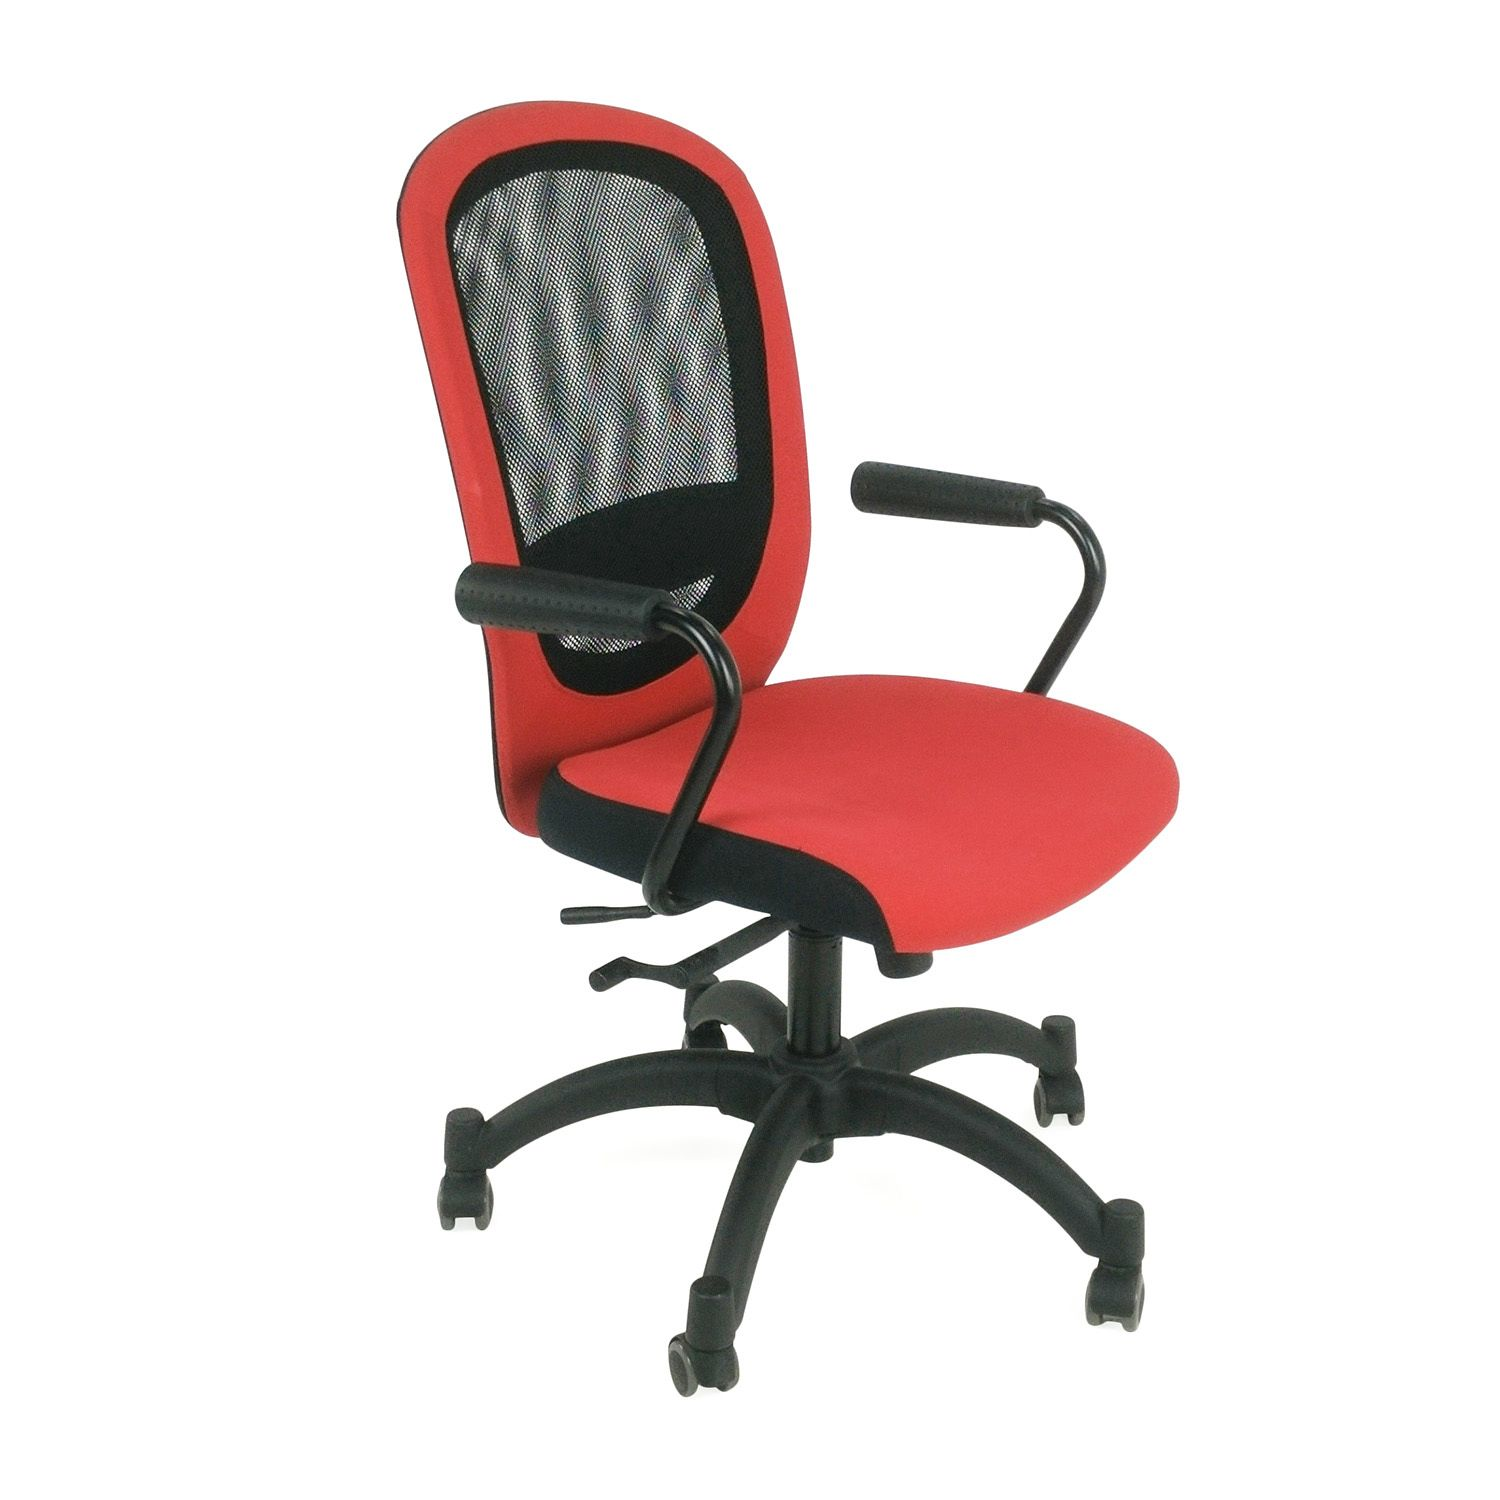 Red Desk Chair Ikea Basket Weave Garden Chairs Pin By Prtha Lastnight On Room Ideas Low Budget Pinterest 2018 Mesh Office Home Furniture Sets Check More At Http